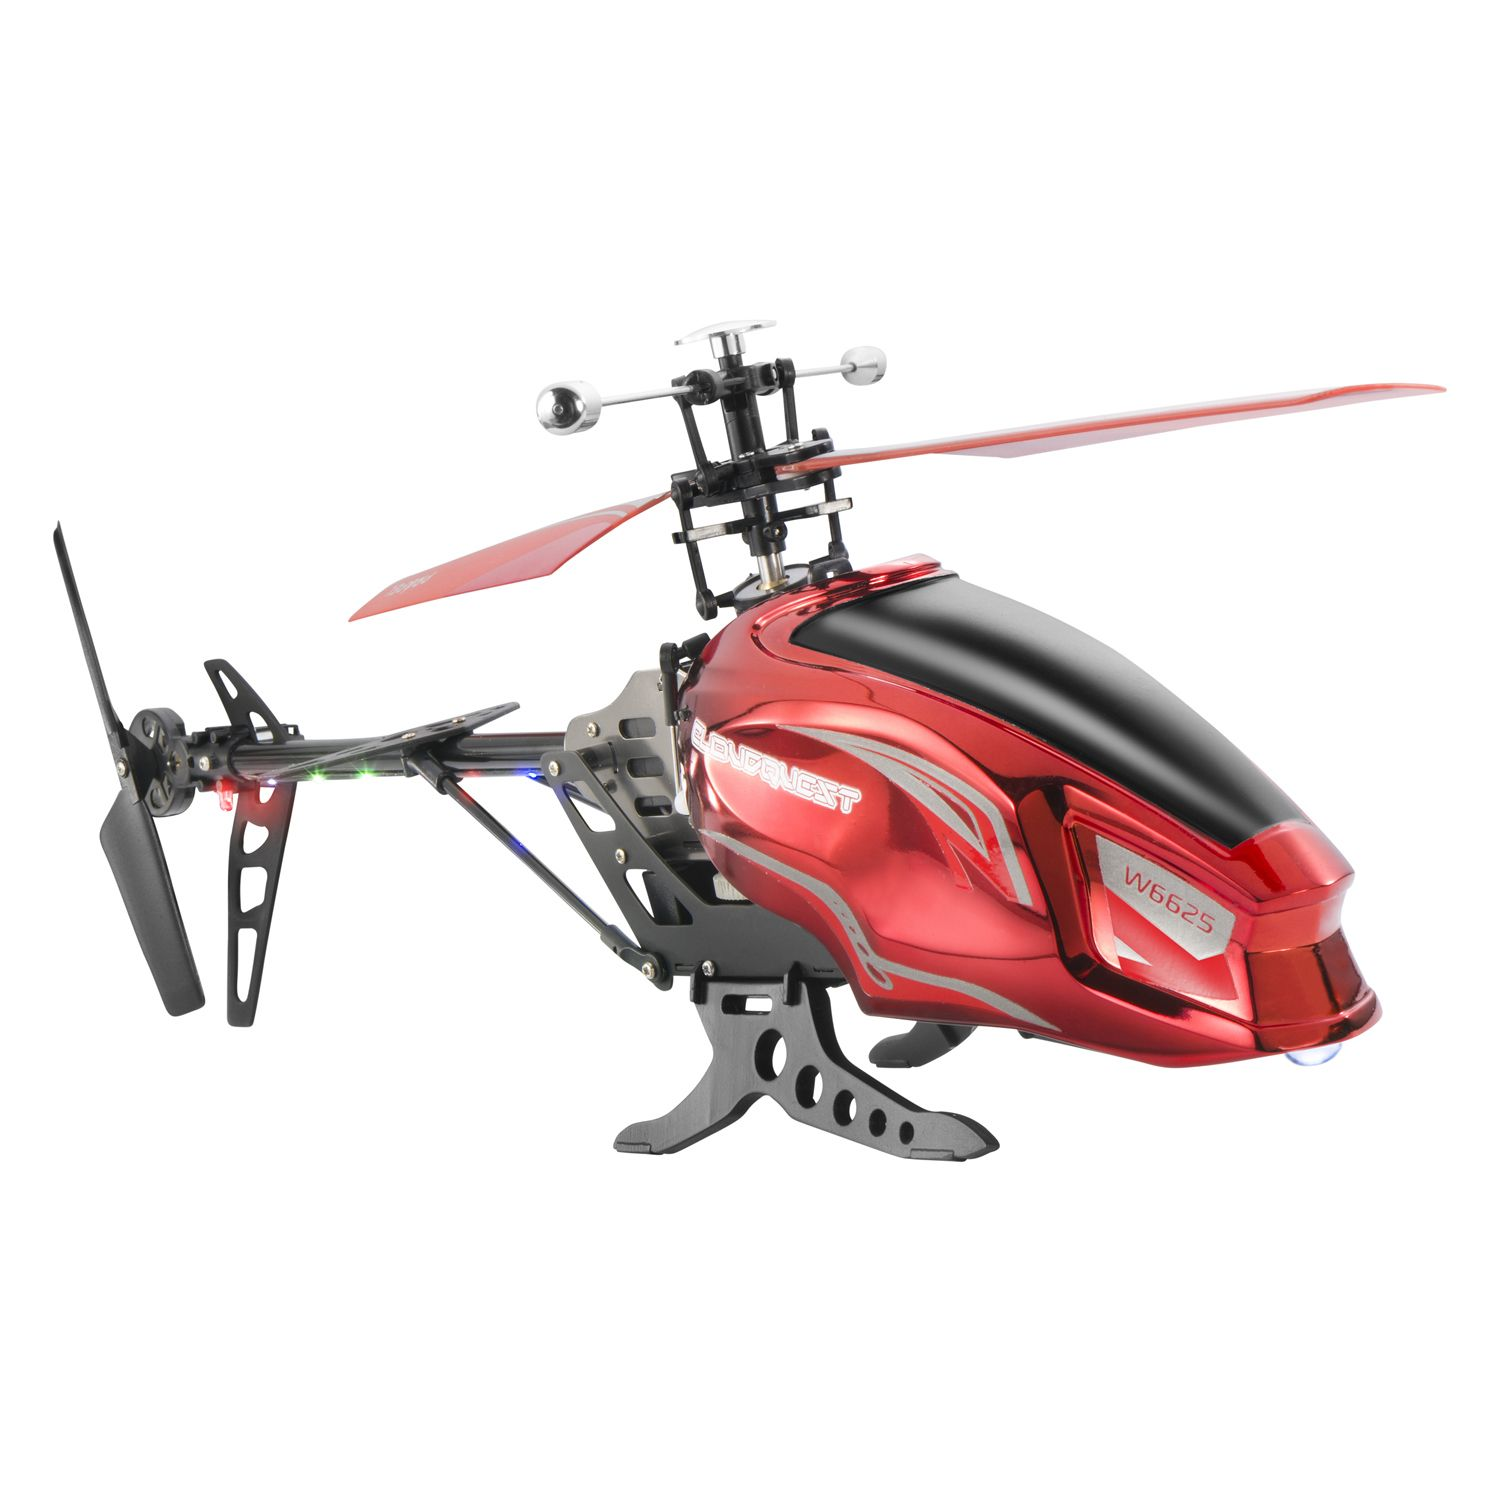 propel rc helicopter parts with Propel Cloud Quest Outdoor Rc Helicopter on 8pcs Cw Ccw Propeller Fitting For Syma X5c X5sc X5sw Rc Quadcopter Accessary further Propel Cloud Quest Outdoor Rc Helicopter as well Kds Rc Helicopter likewise Search in addition Showthread.